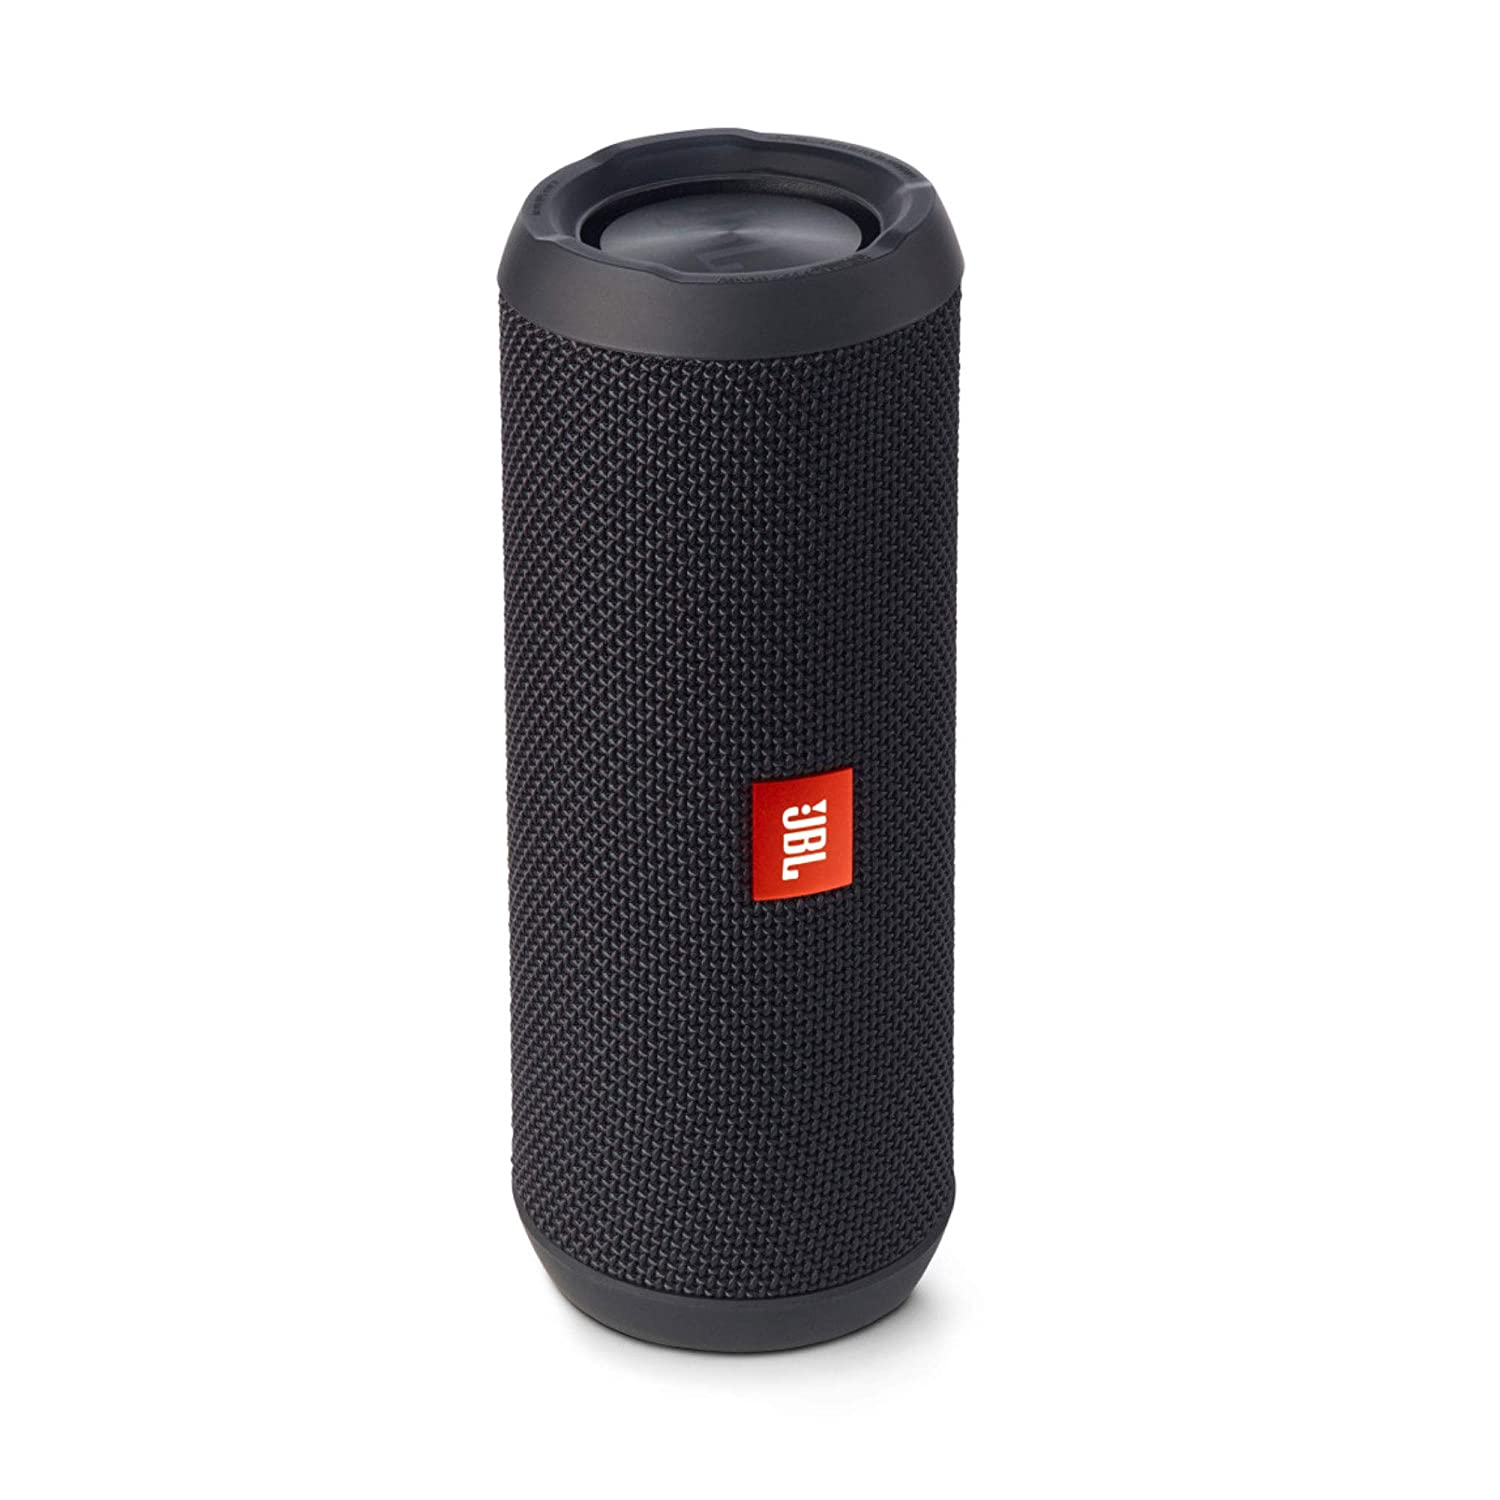 JBL Flip 3 Portable Wireless Speaker with Powerful Sound and Mic (Black)